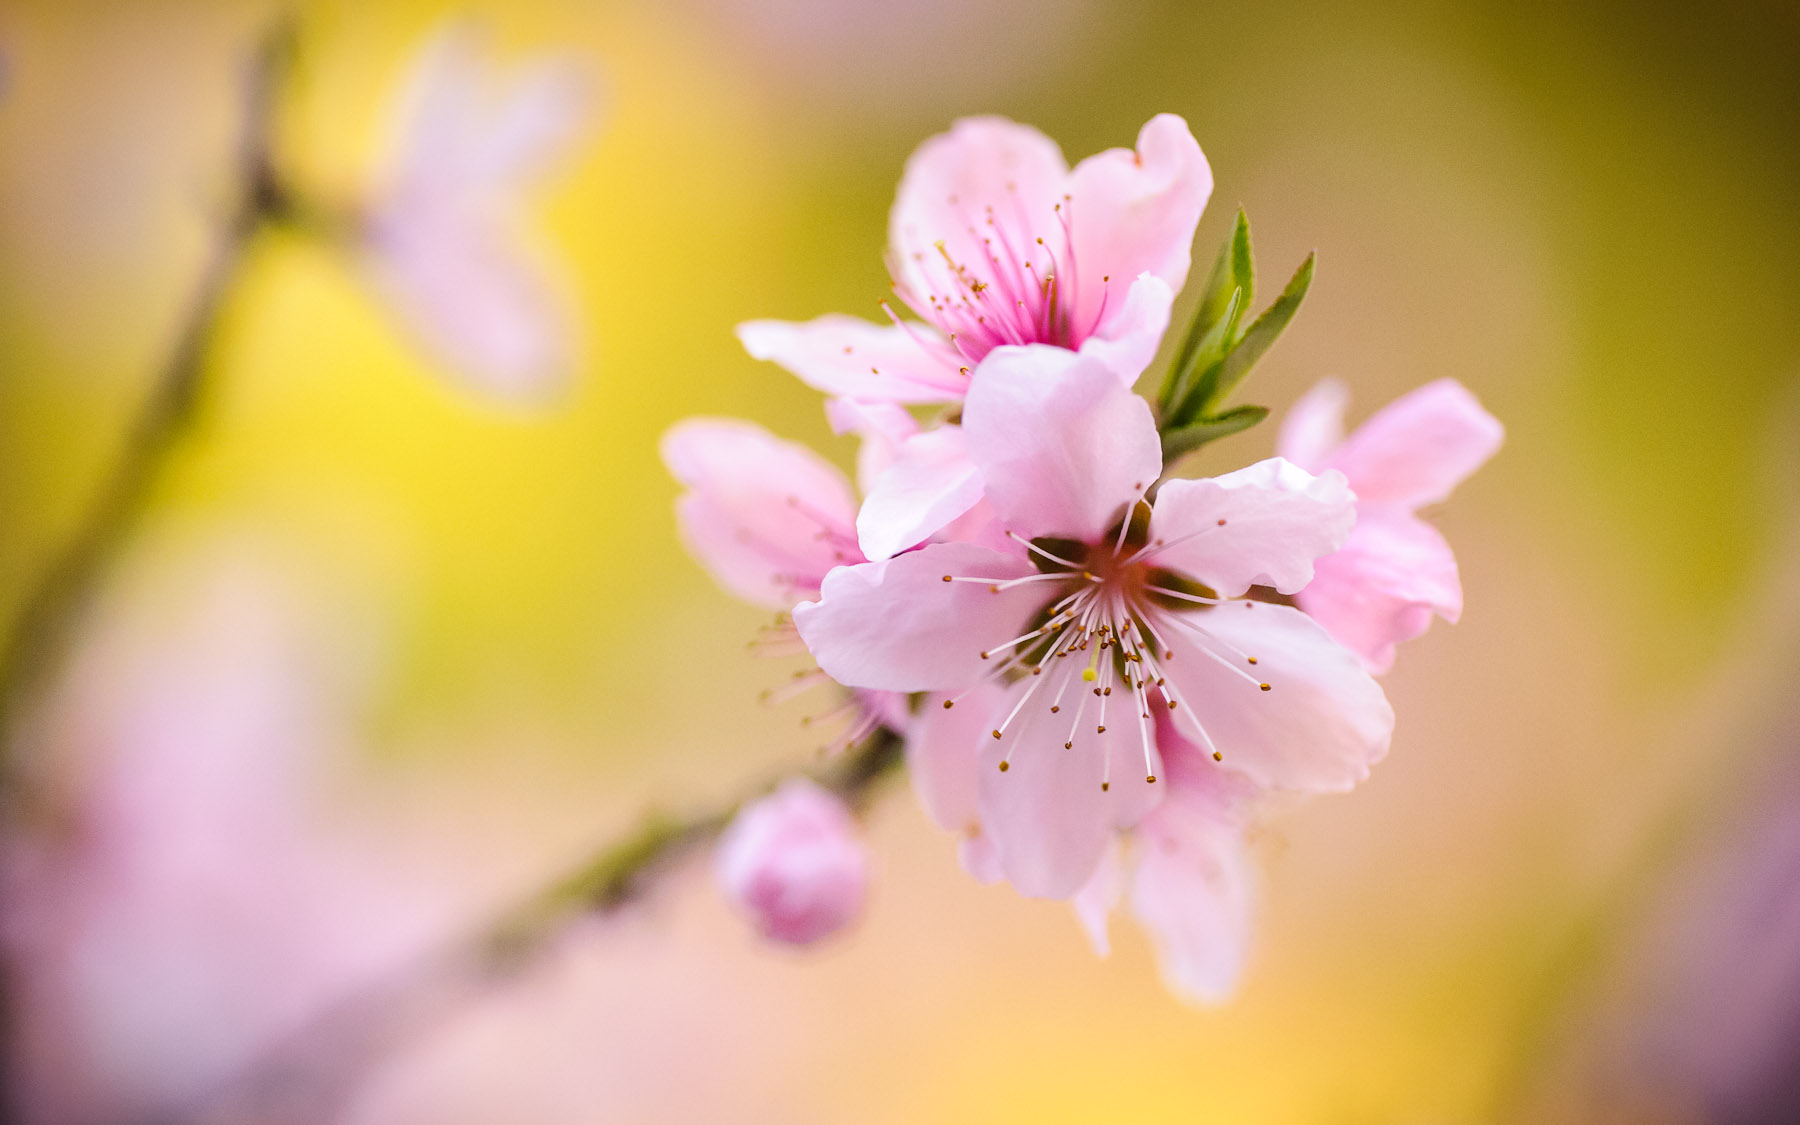 Desktop Background Image Of Delicate Pink Peach Blossoms In Kyoto Japan Pretty As